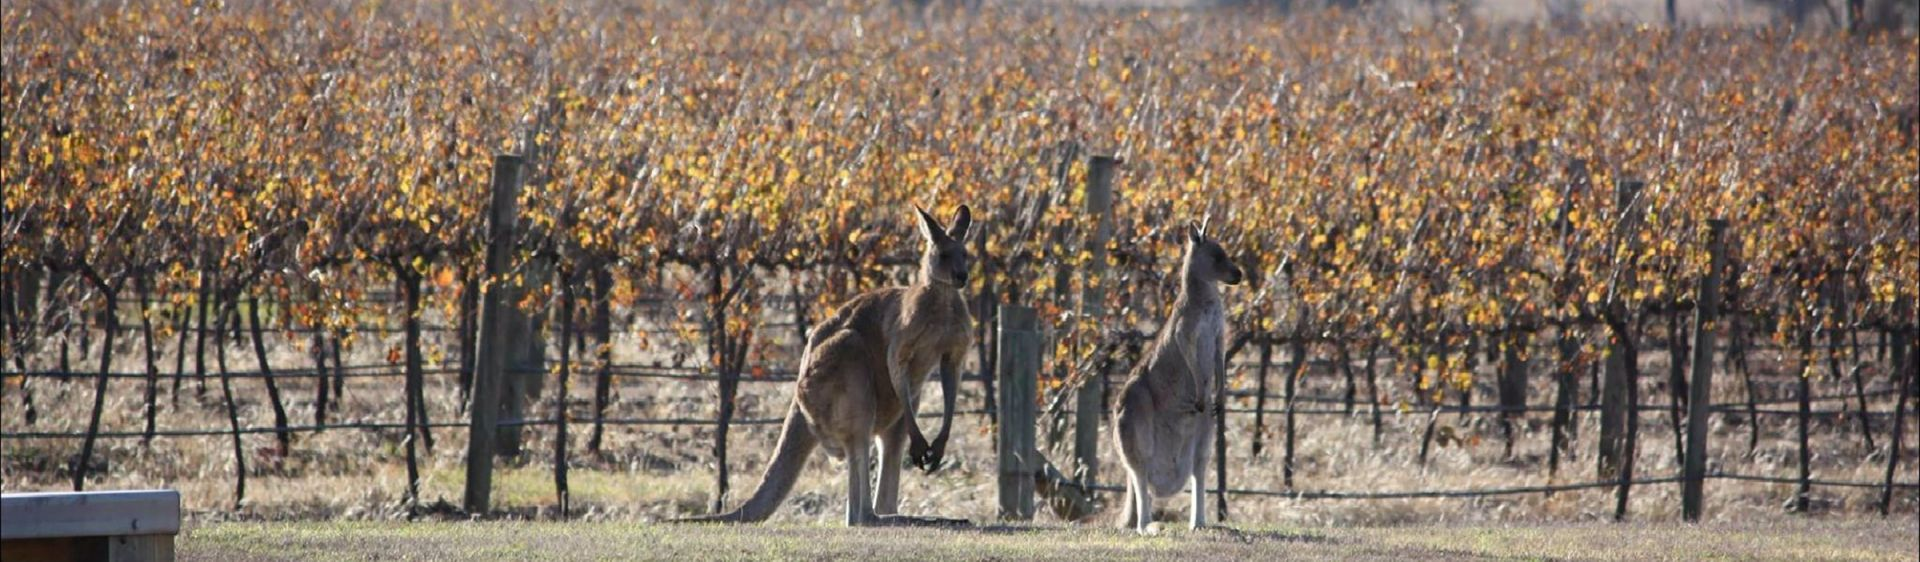 Kangaroos in the Two Rivers Wines vineyard, Denman